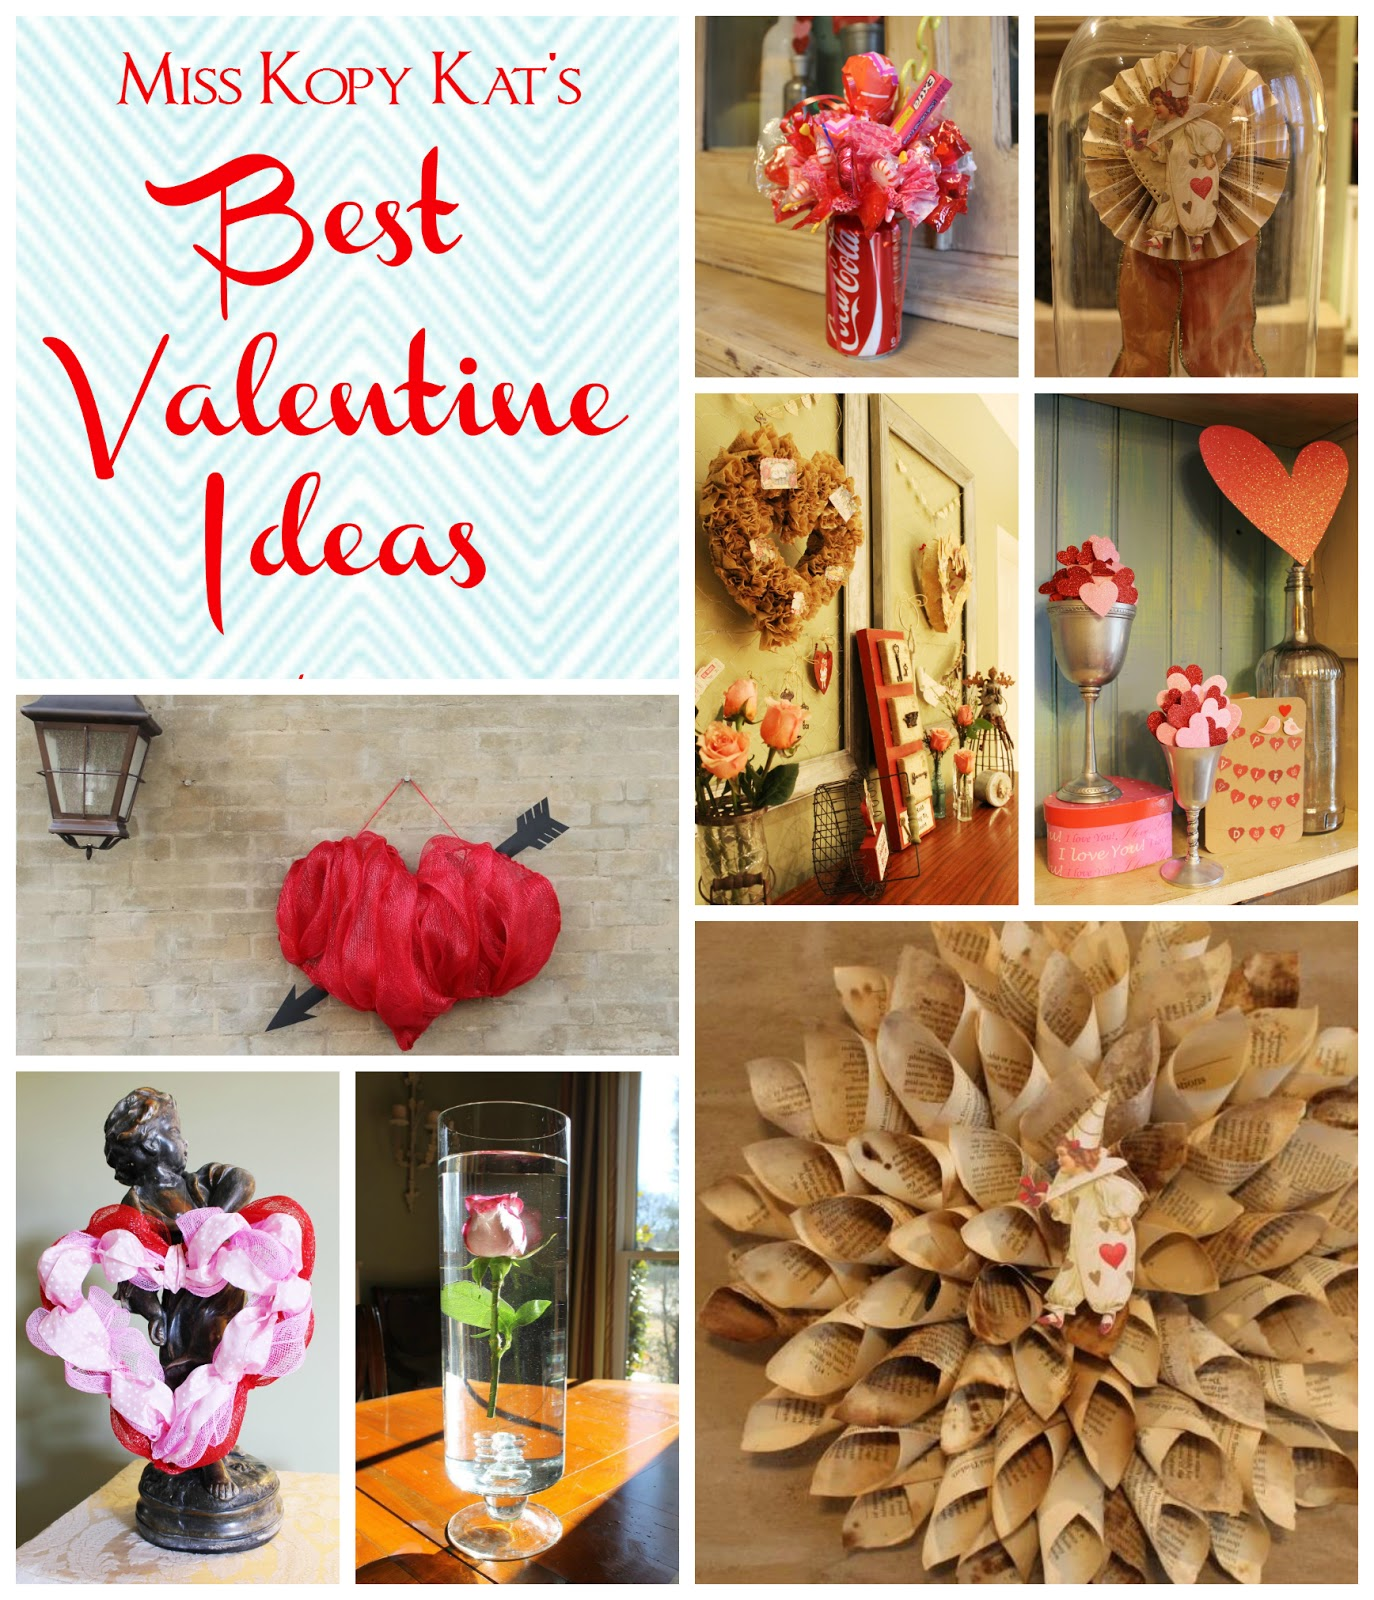 Best Valentine Ideas